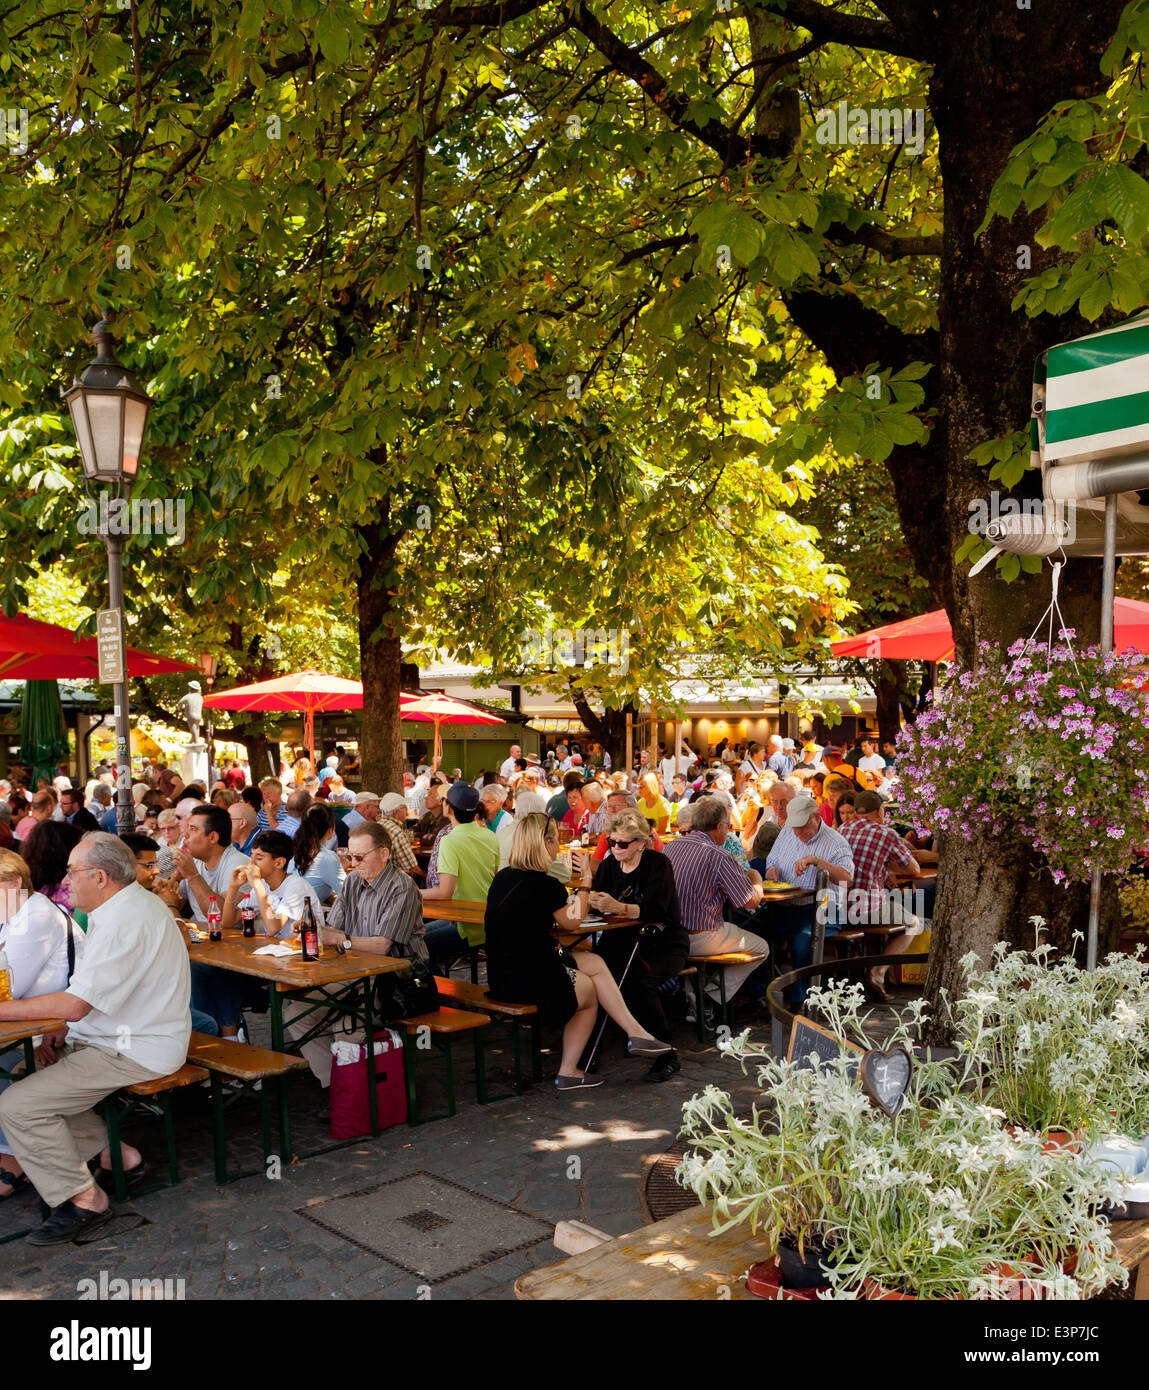 Munich, Viktualienmarkt beer garden - Munich, Bavaria, Germany, Europe - Stock Image